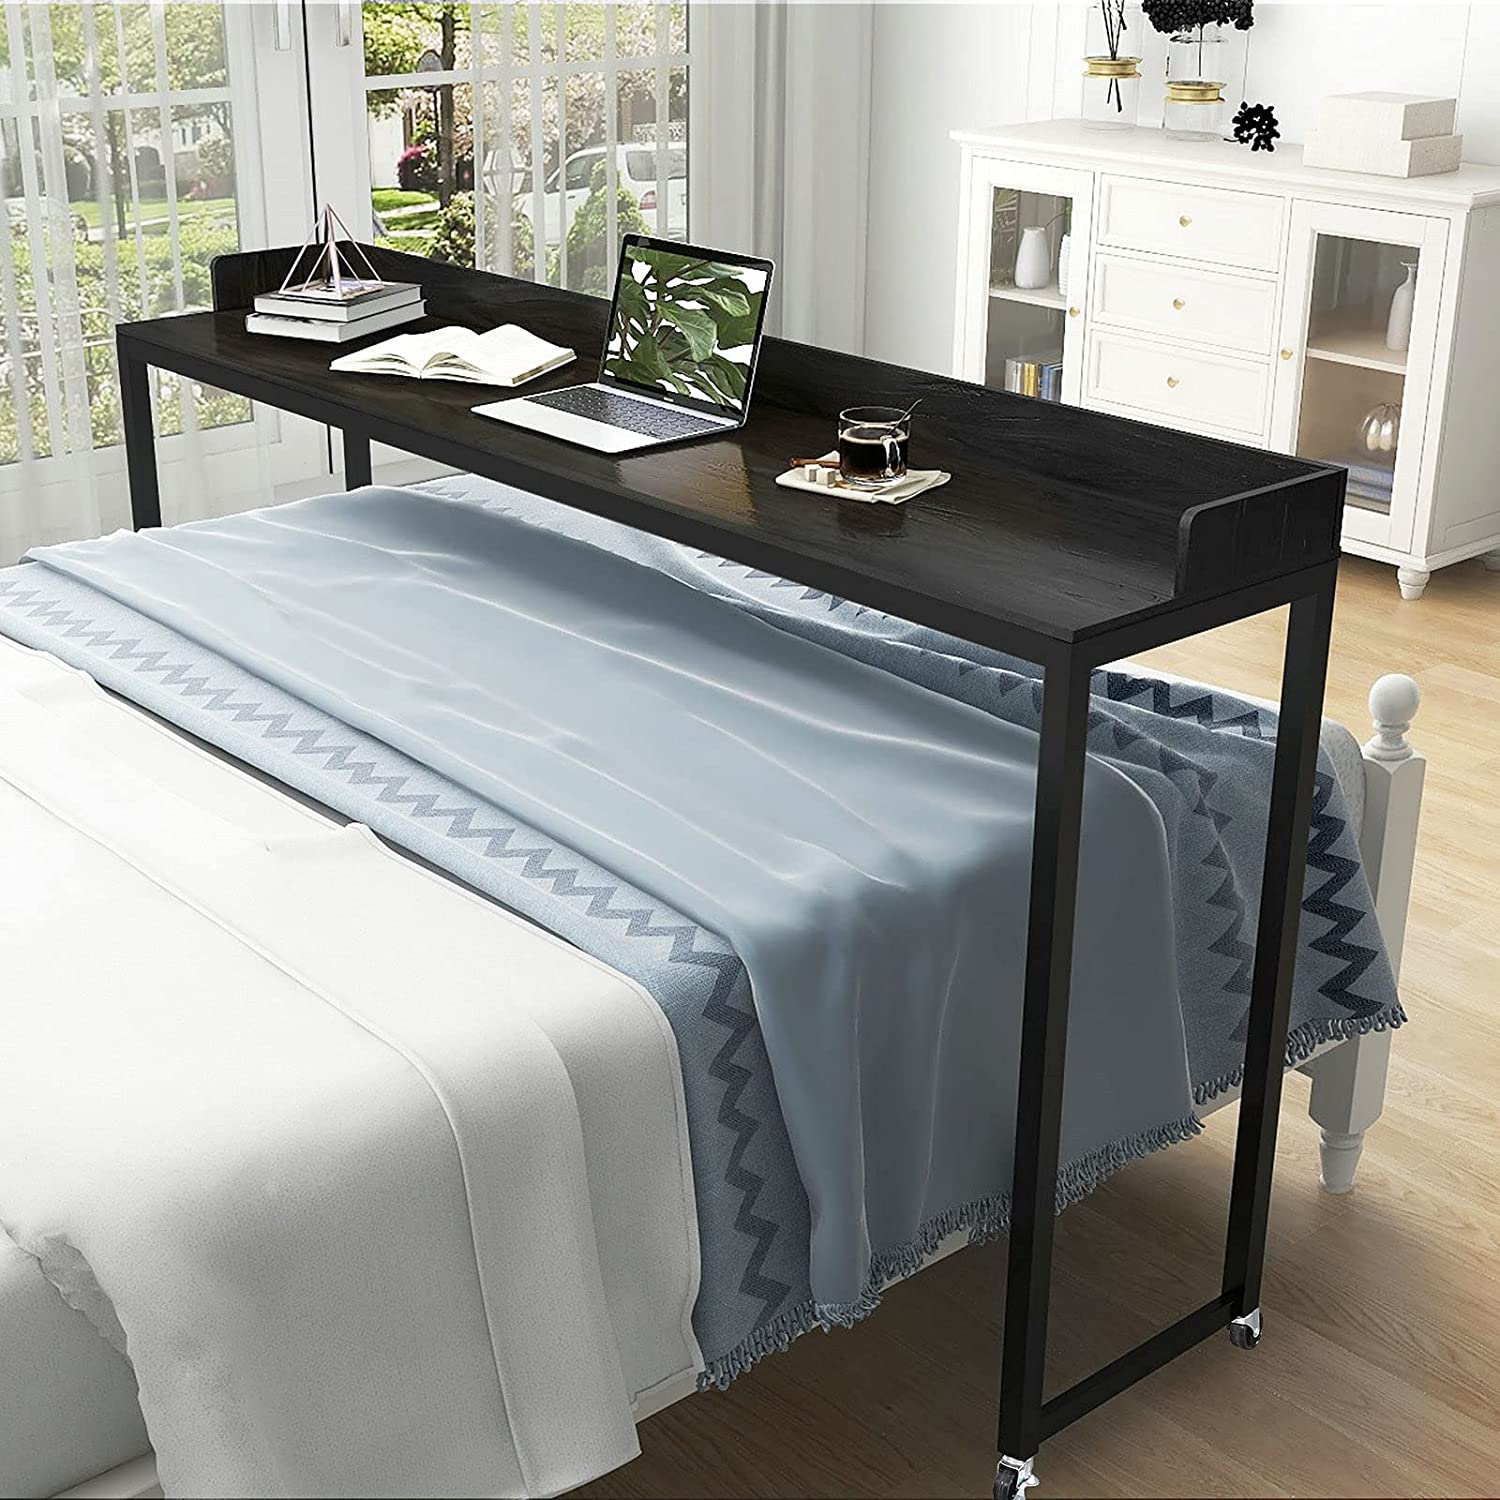 LUMISOL Ultra-Cheap Deals Overbed Table with Wheels H Price reduction Desk Queen Size Mobile